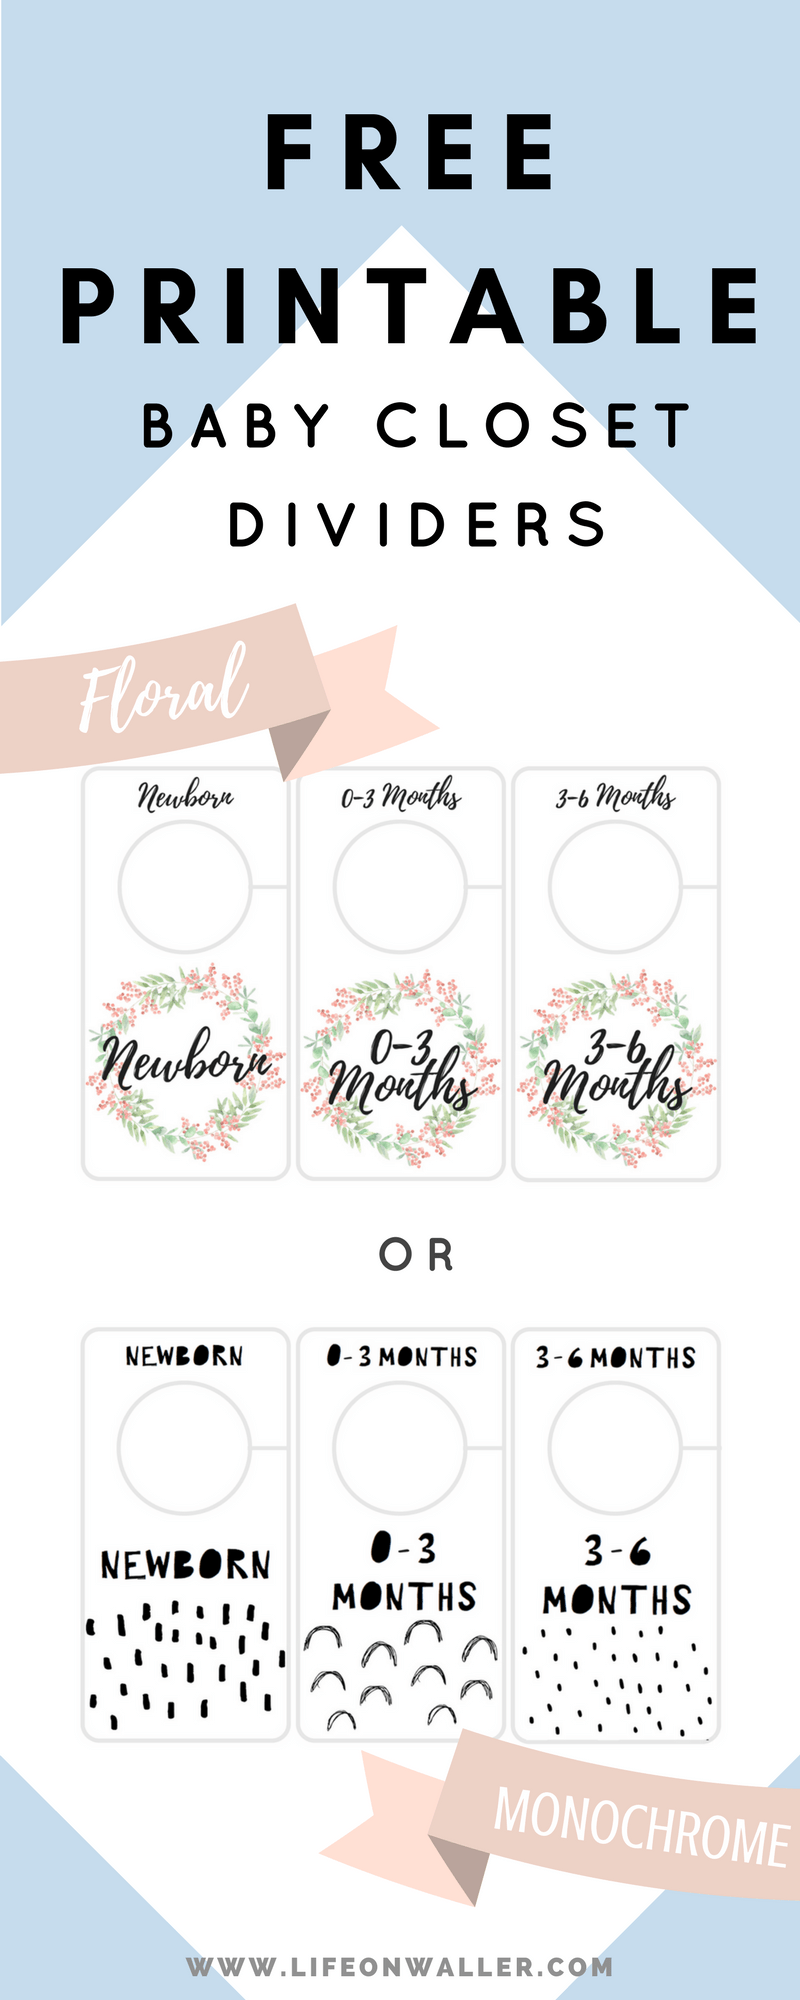 photograph relating to Printable Closet Dividers named No cost Printable Little one Closet Dividers Preemie in direction of 24 Weeks - 2